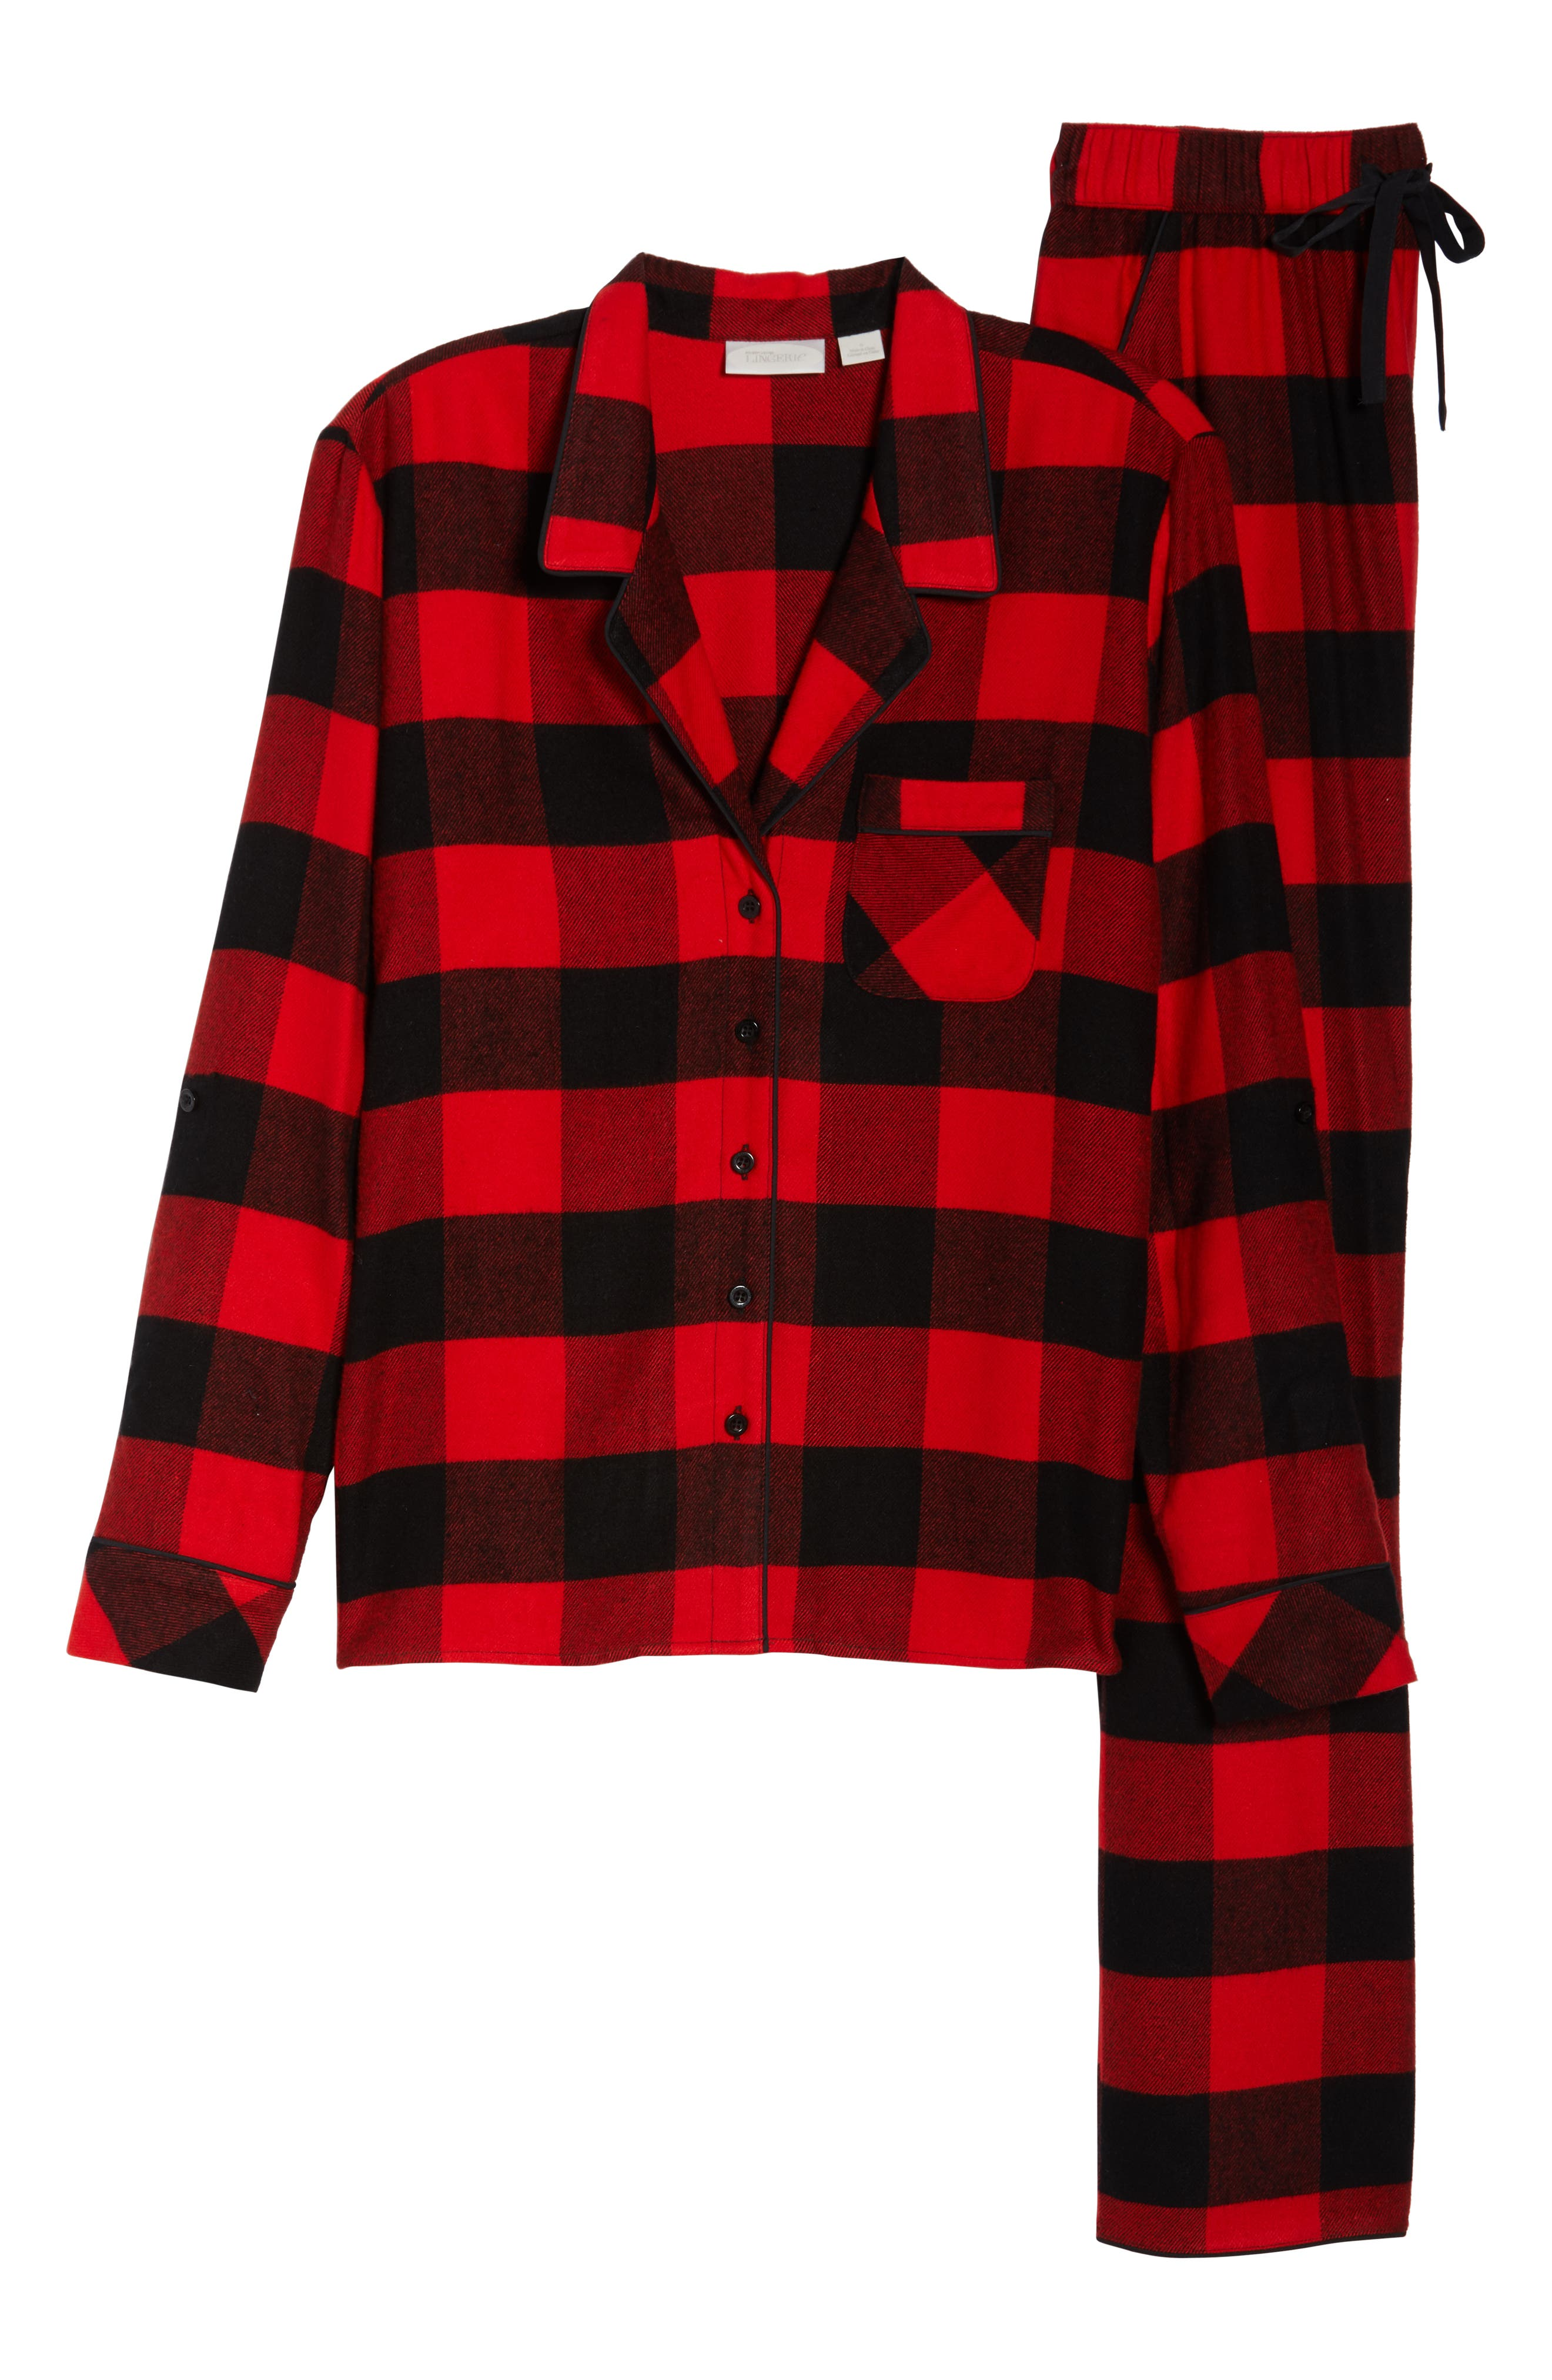 Lingerie Starlight Flannel Pajamas,                             Alternate thumbnail 6, color,                             RED BLOOM LARGE BUFFALO CHECK